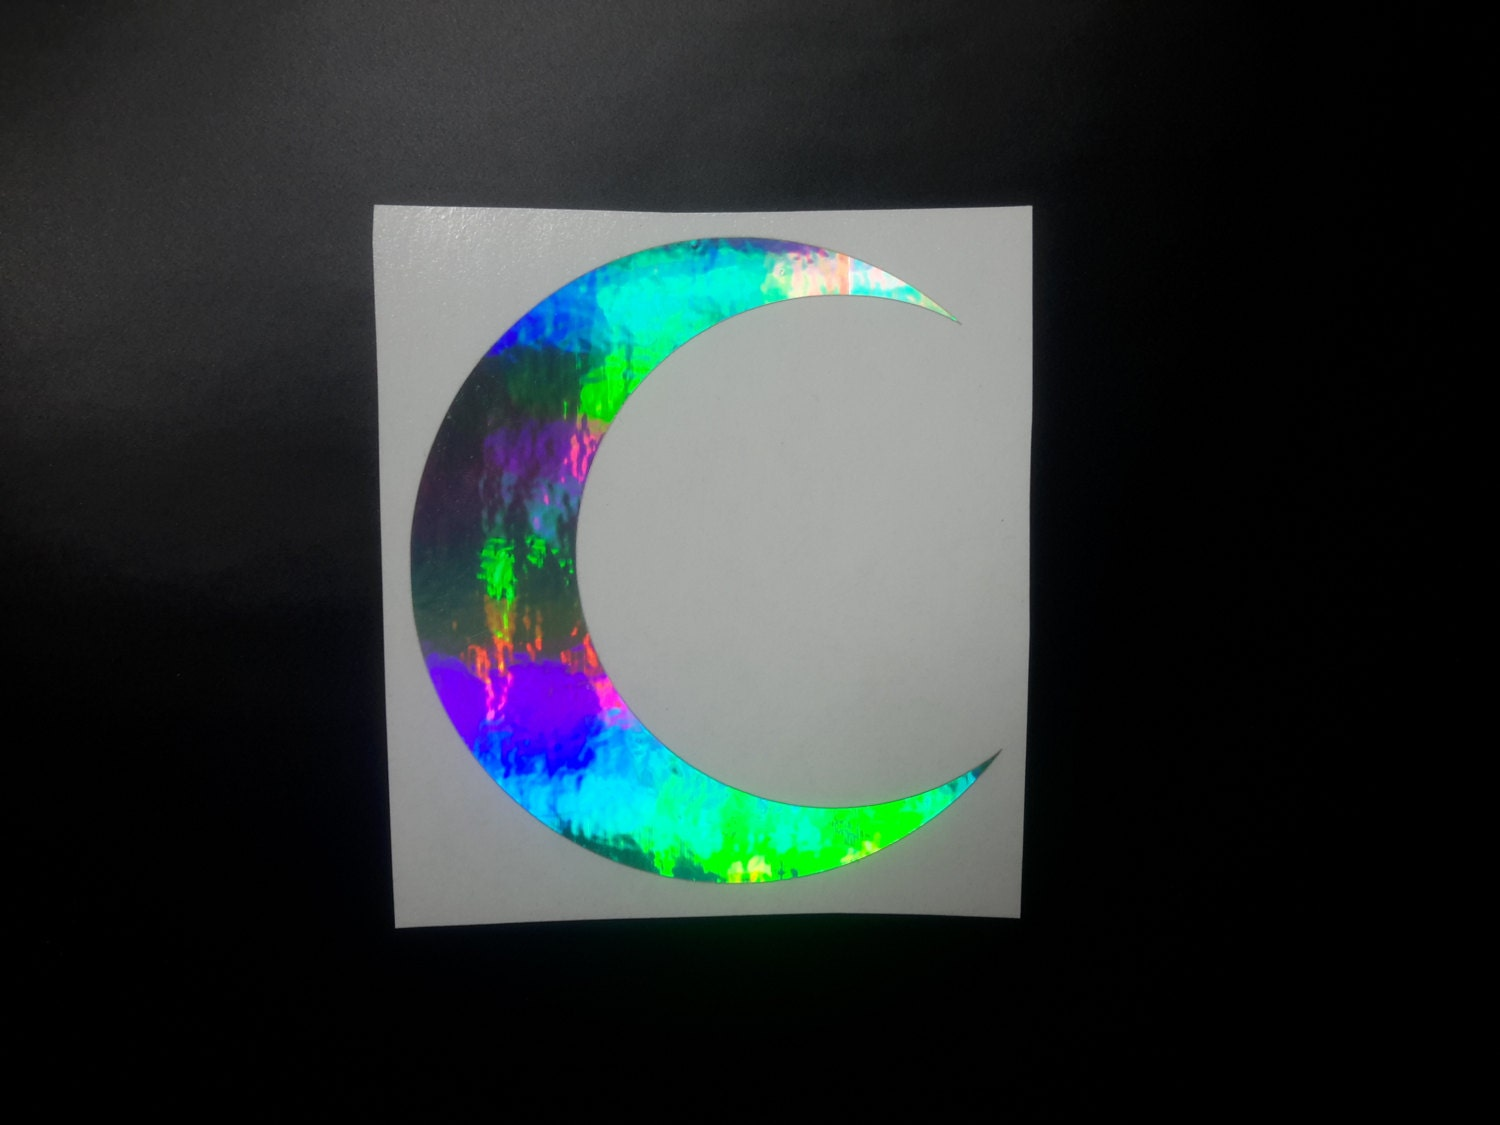 Moon Decal Holographic Moon Decal Holographic Moon Crescent - Sticker custom vinyl decals for carcustom vinyl decals and stickers by stickythingz on etsy